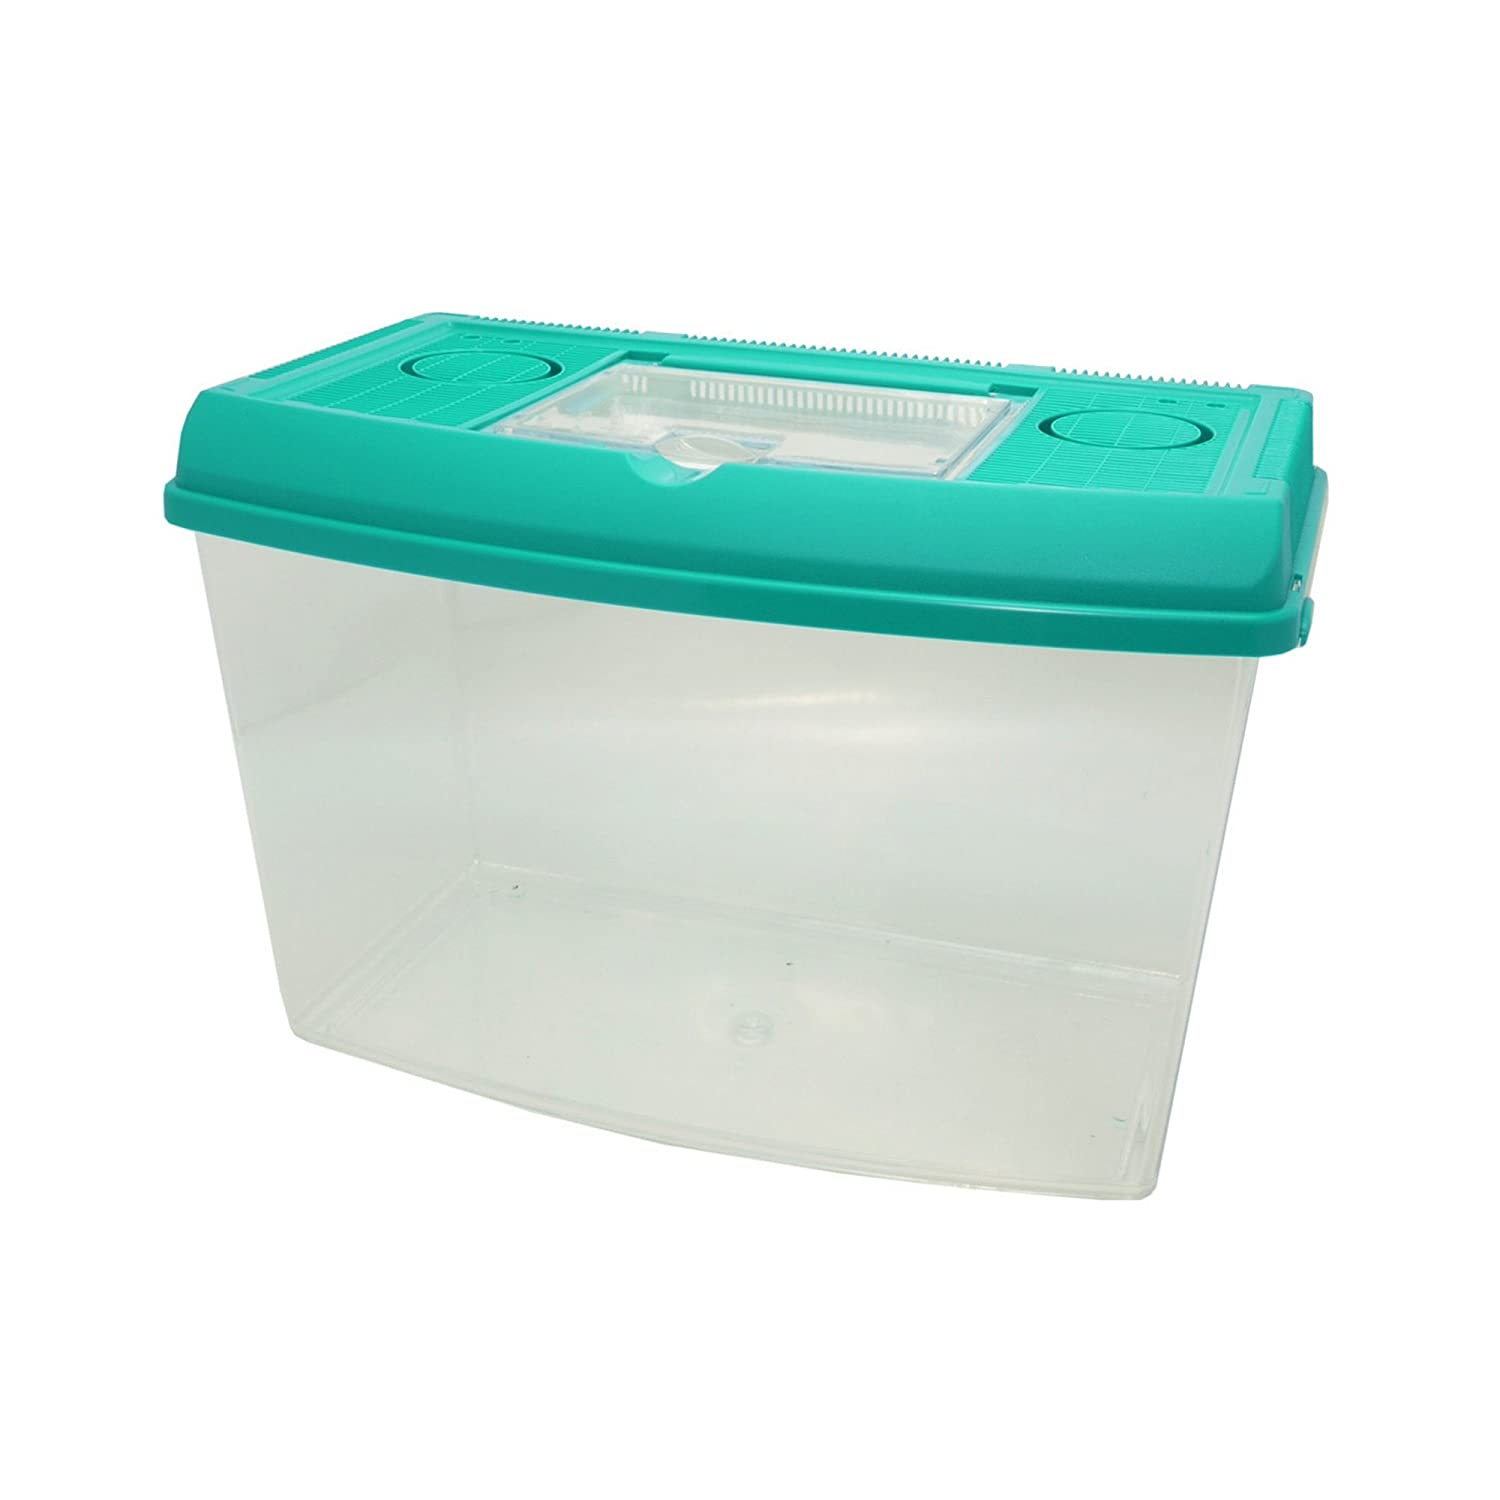 Assorted X-Large Assorted X-Large pinkwood Pet Keeper Plastic Pet Tank (Assorted colors) (X Large) (Assorted)